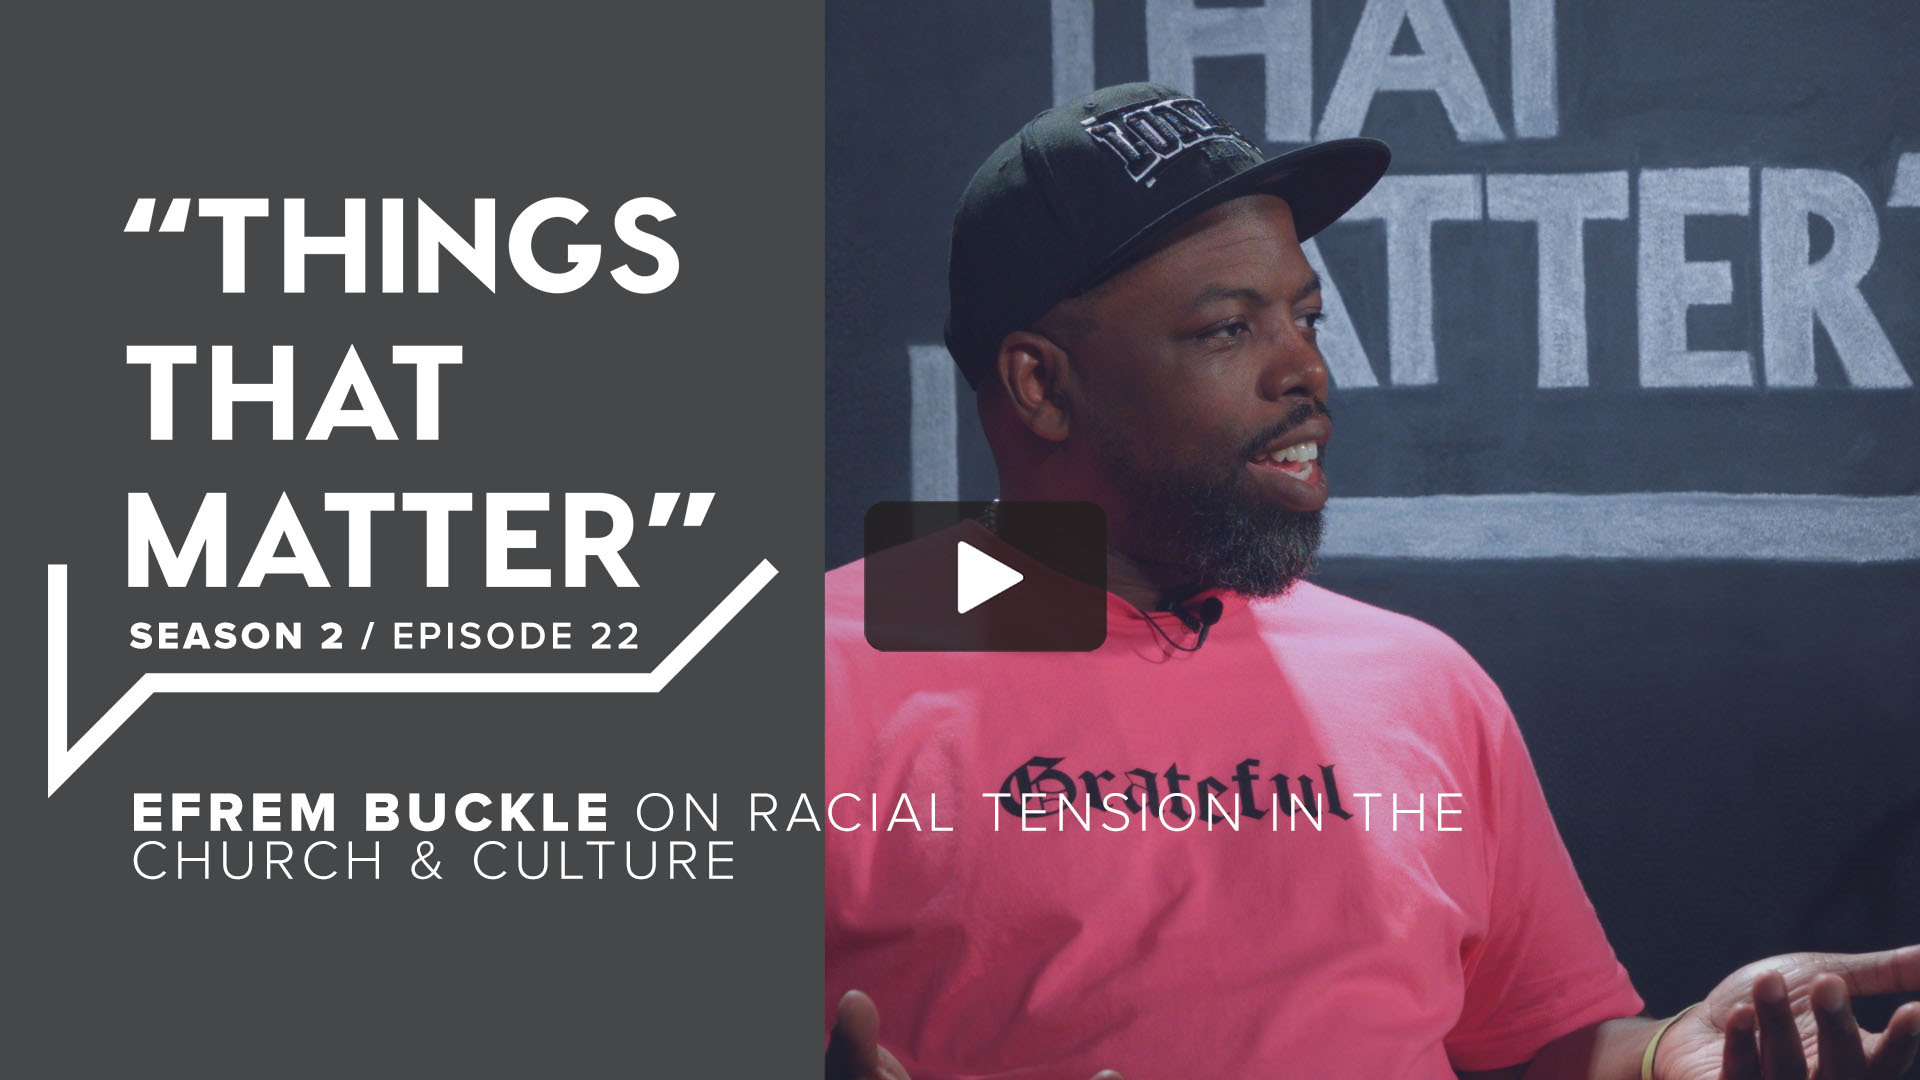 TTM S2 E22 - Efrem Buckle on Racial Tension in the Church & Culture